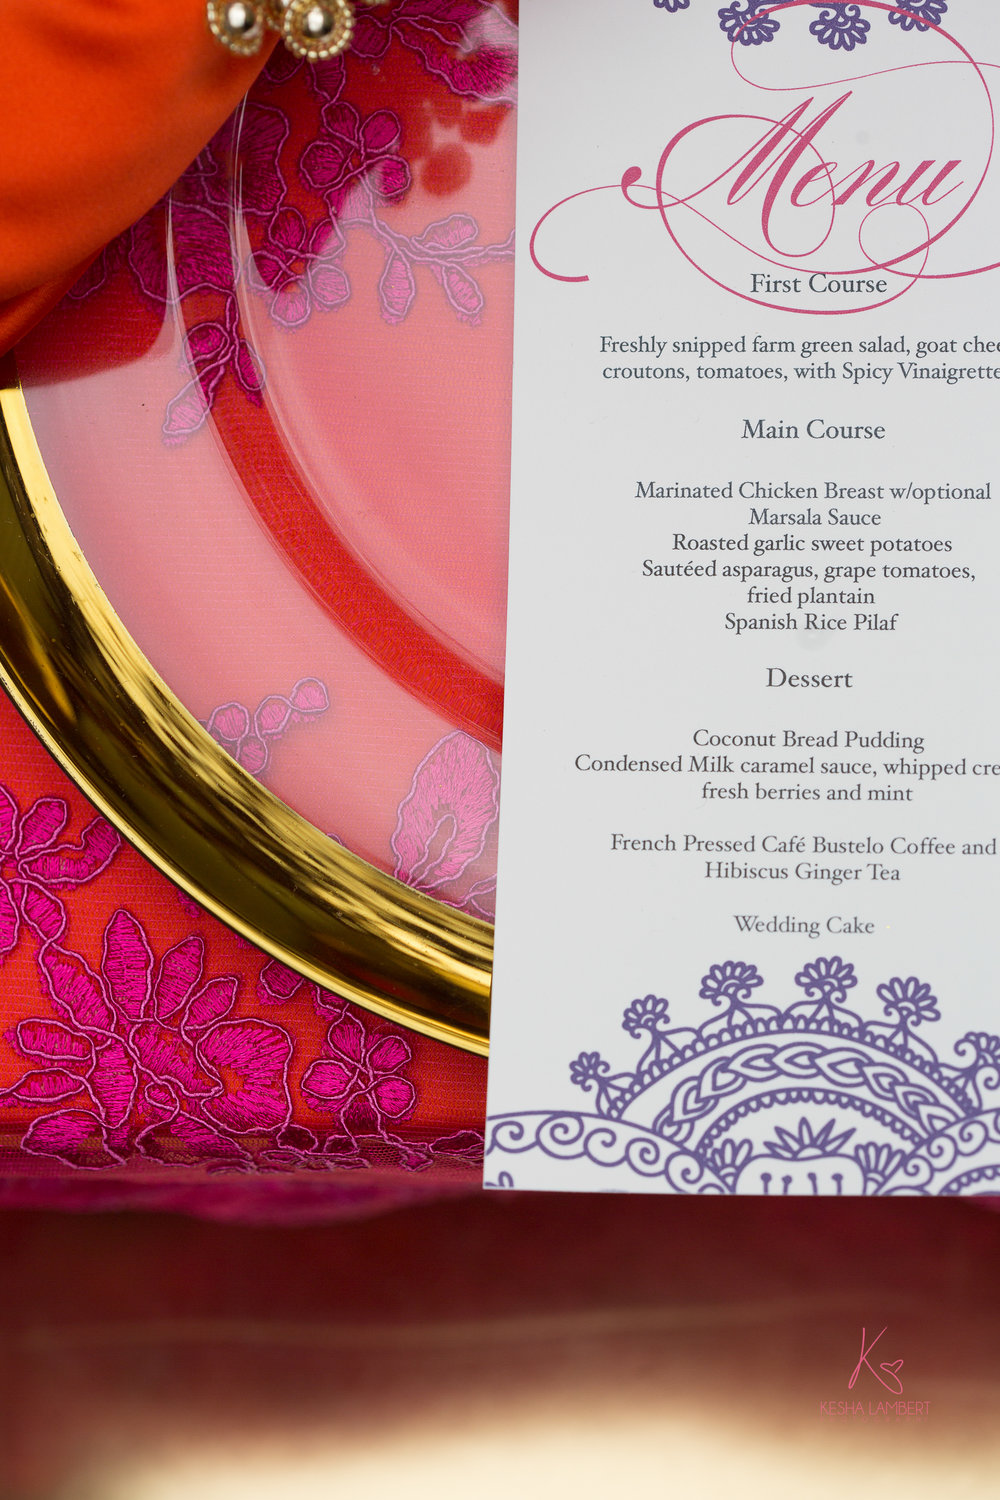 Paper Dreams + Keepsakes | Http://www.paperdreamsllc.com | New York Stationery Designer | Bollywood Meets Brooklyn Styled Shoot Menu Card